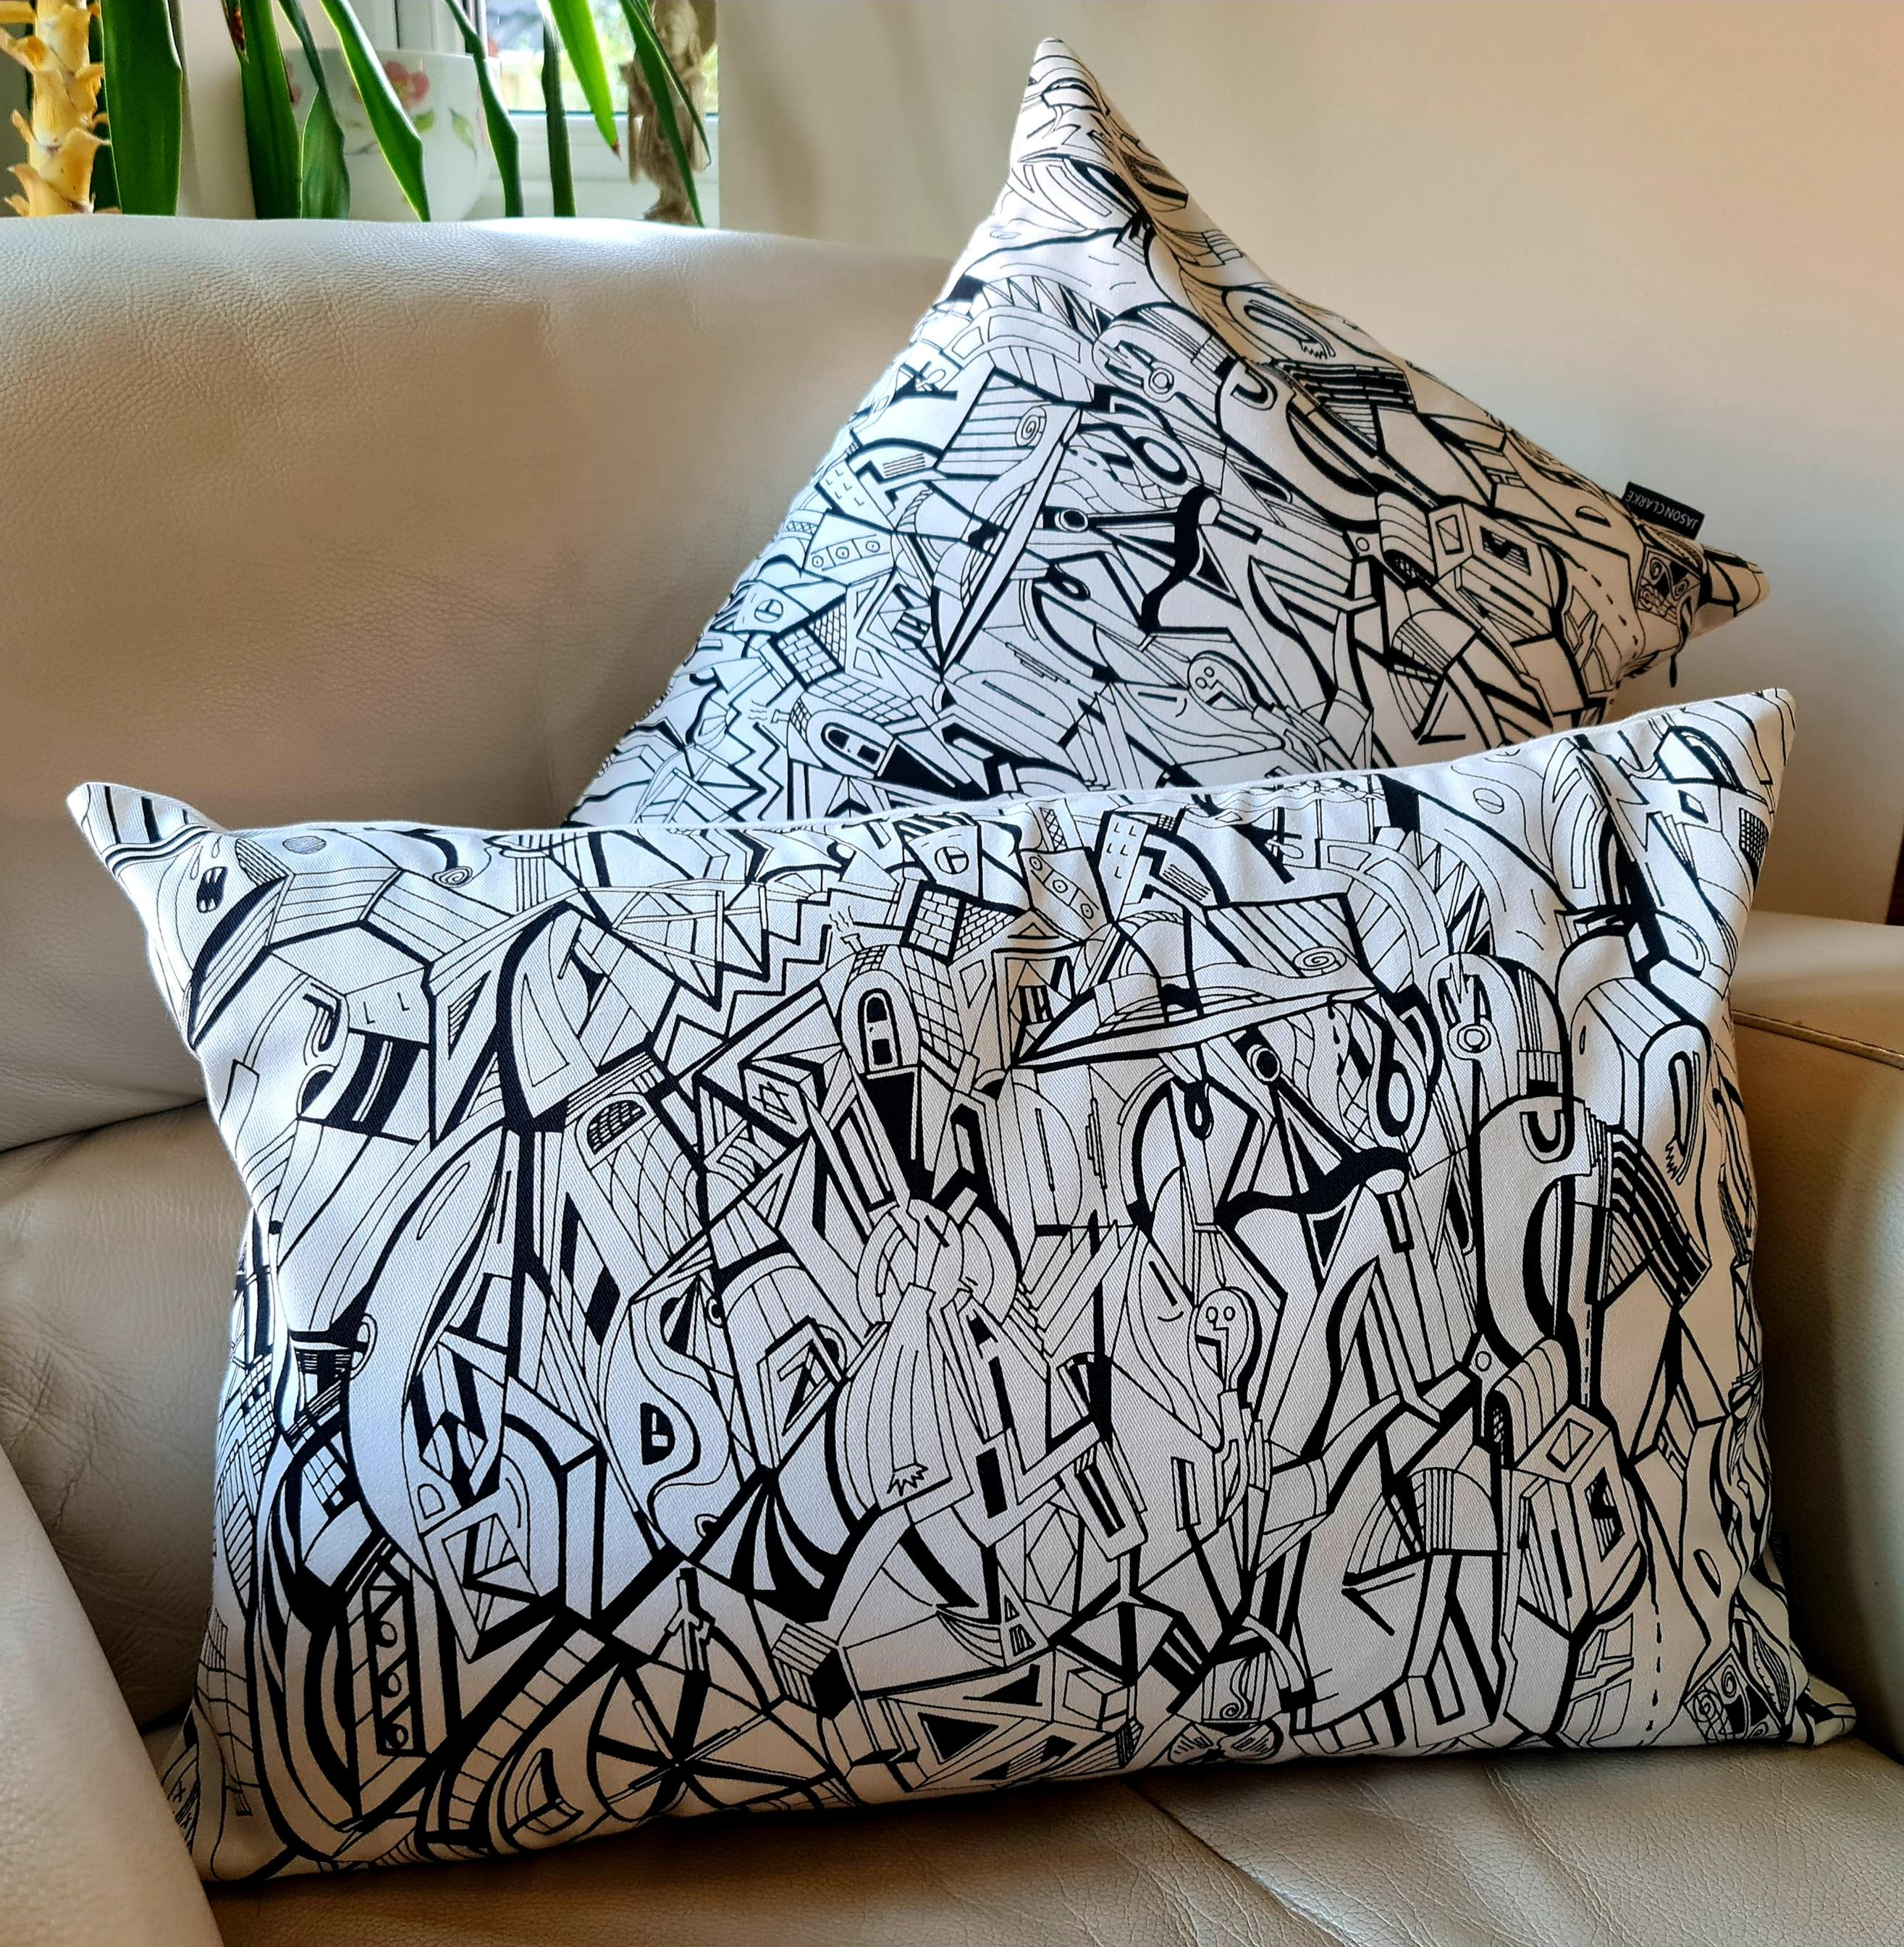 Cream coloured cotton rectangular cushion with artwork from Jason Clarke printed on the front.